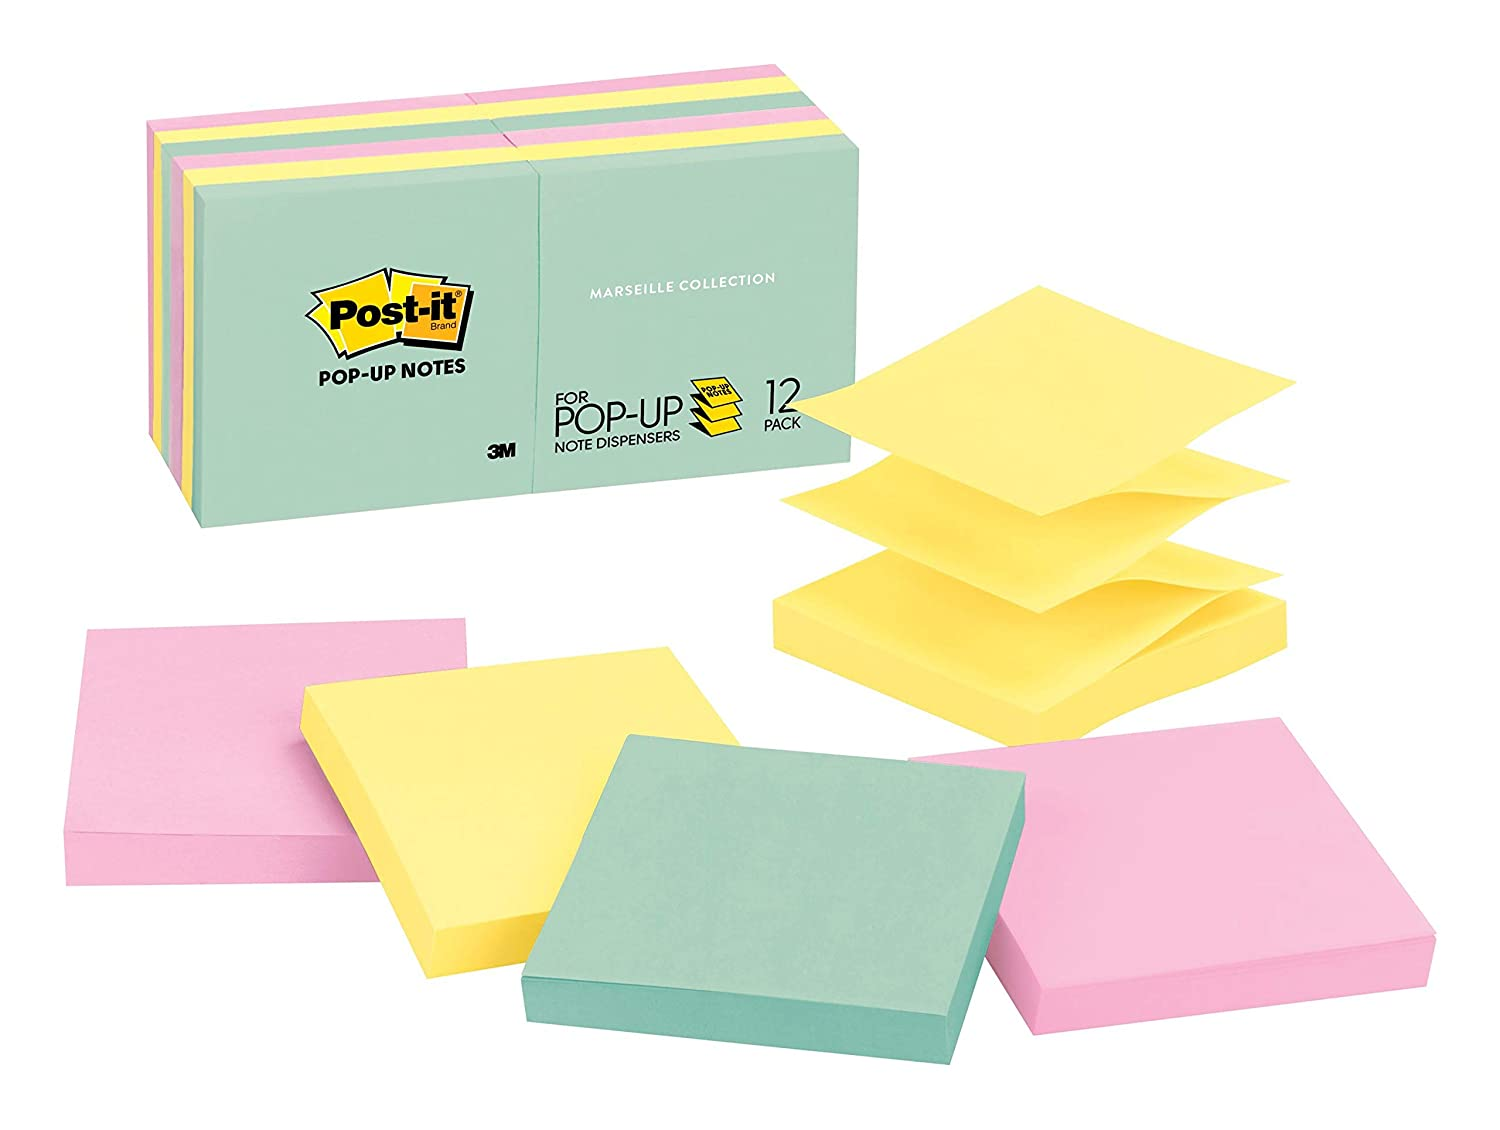 Post-it Pop-up Notes, Green, Pink, Canary Yellow, Blues, Designed for Pop-up Note Dispensers, Great for Reminders, 3 in. x 3 in, 12 Pads/Pack, 100 Sheets/Pad (R330-12AP)